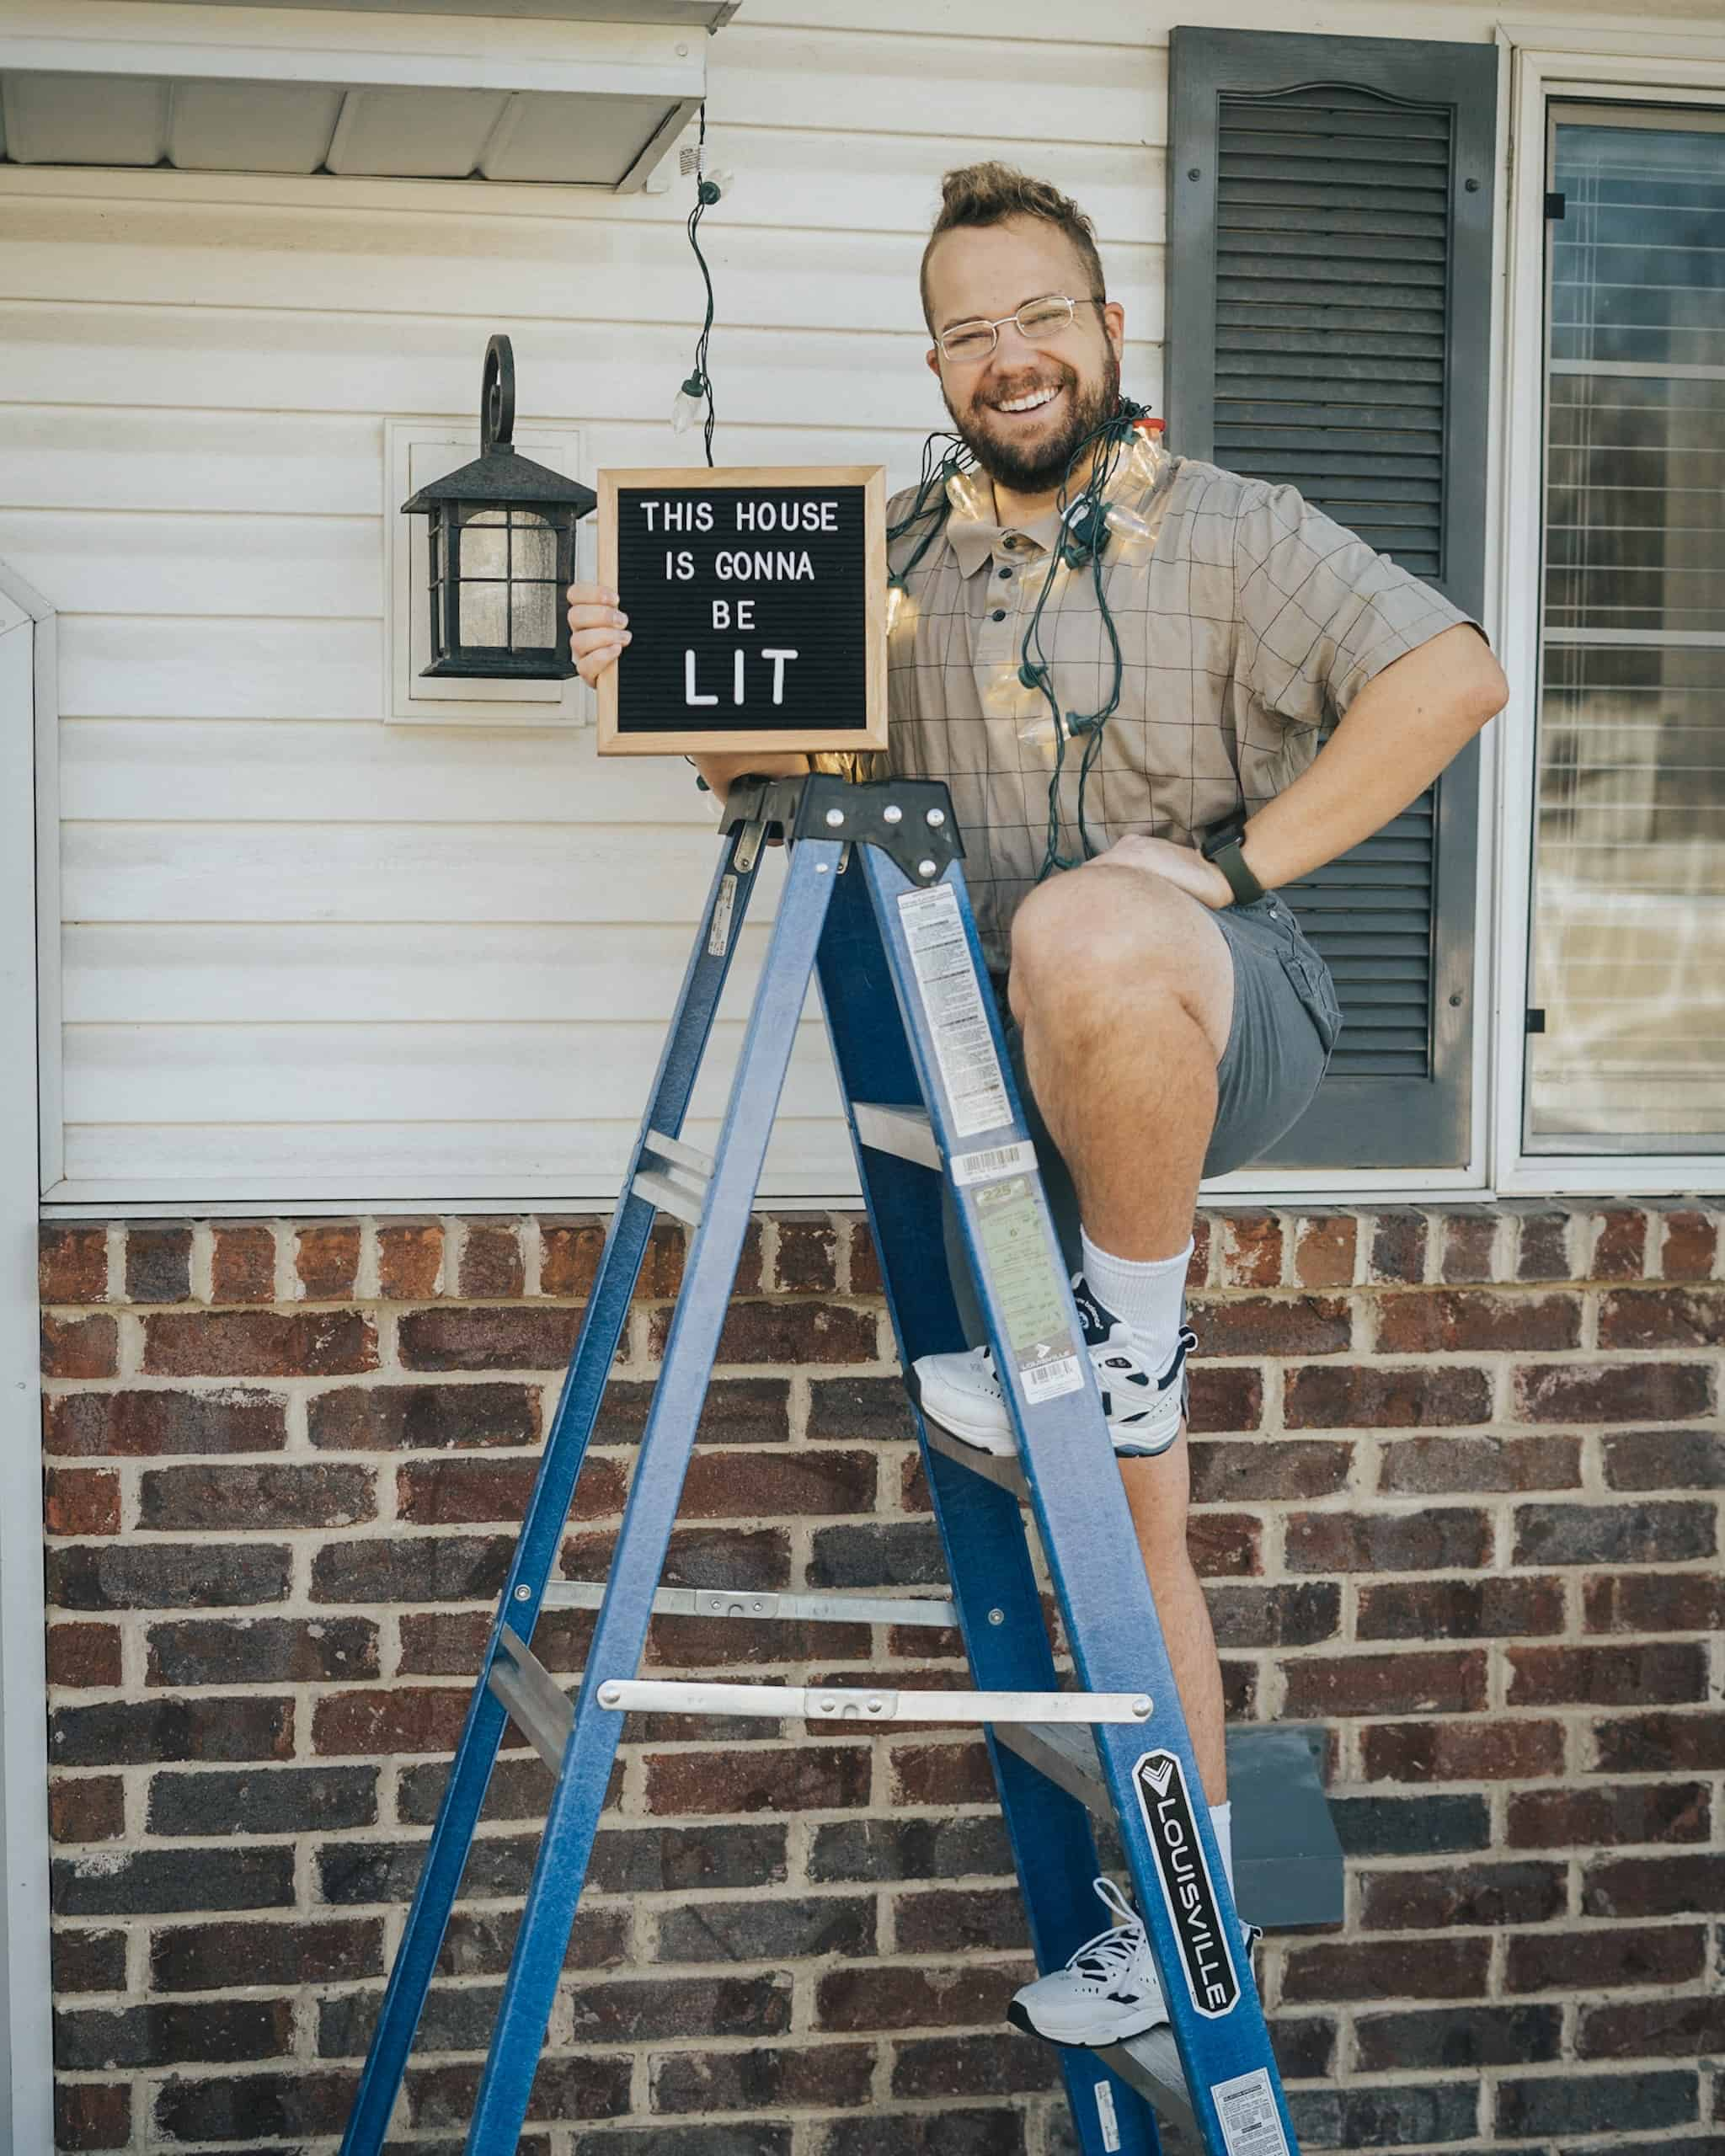 Andrew standing on a ladder